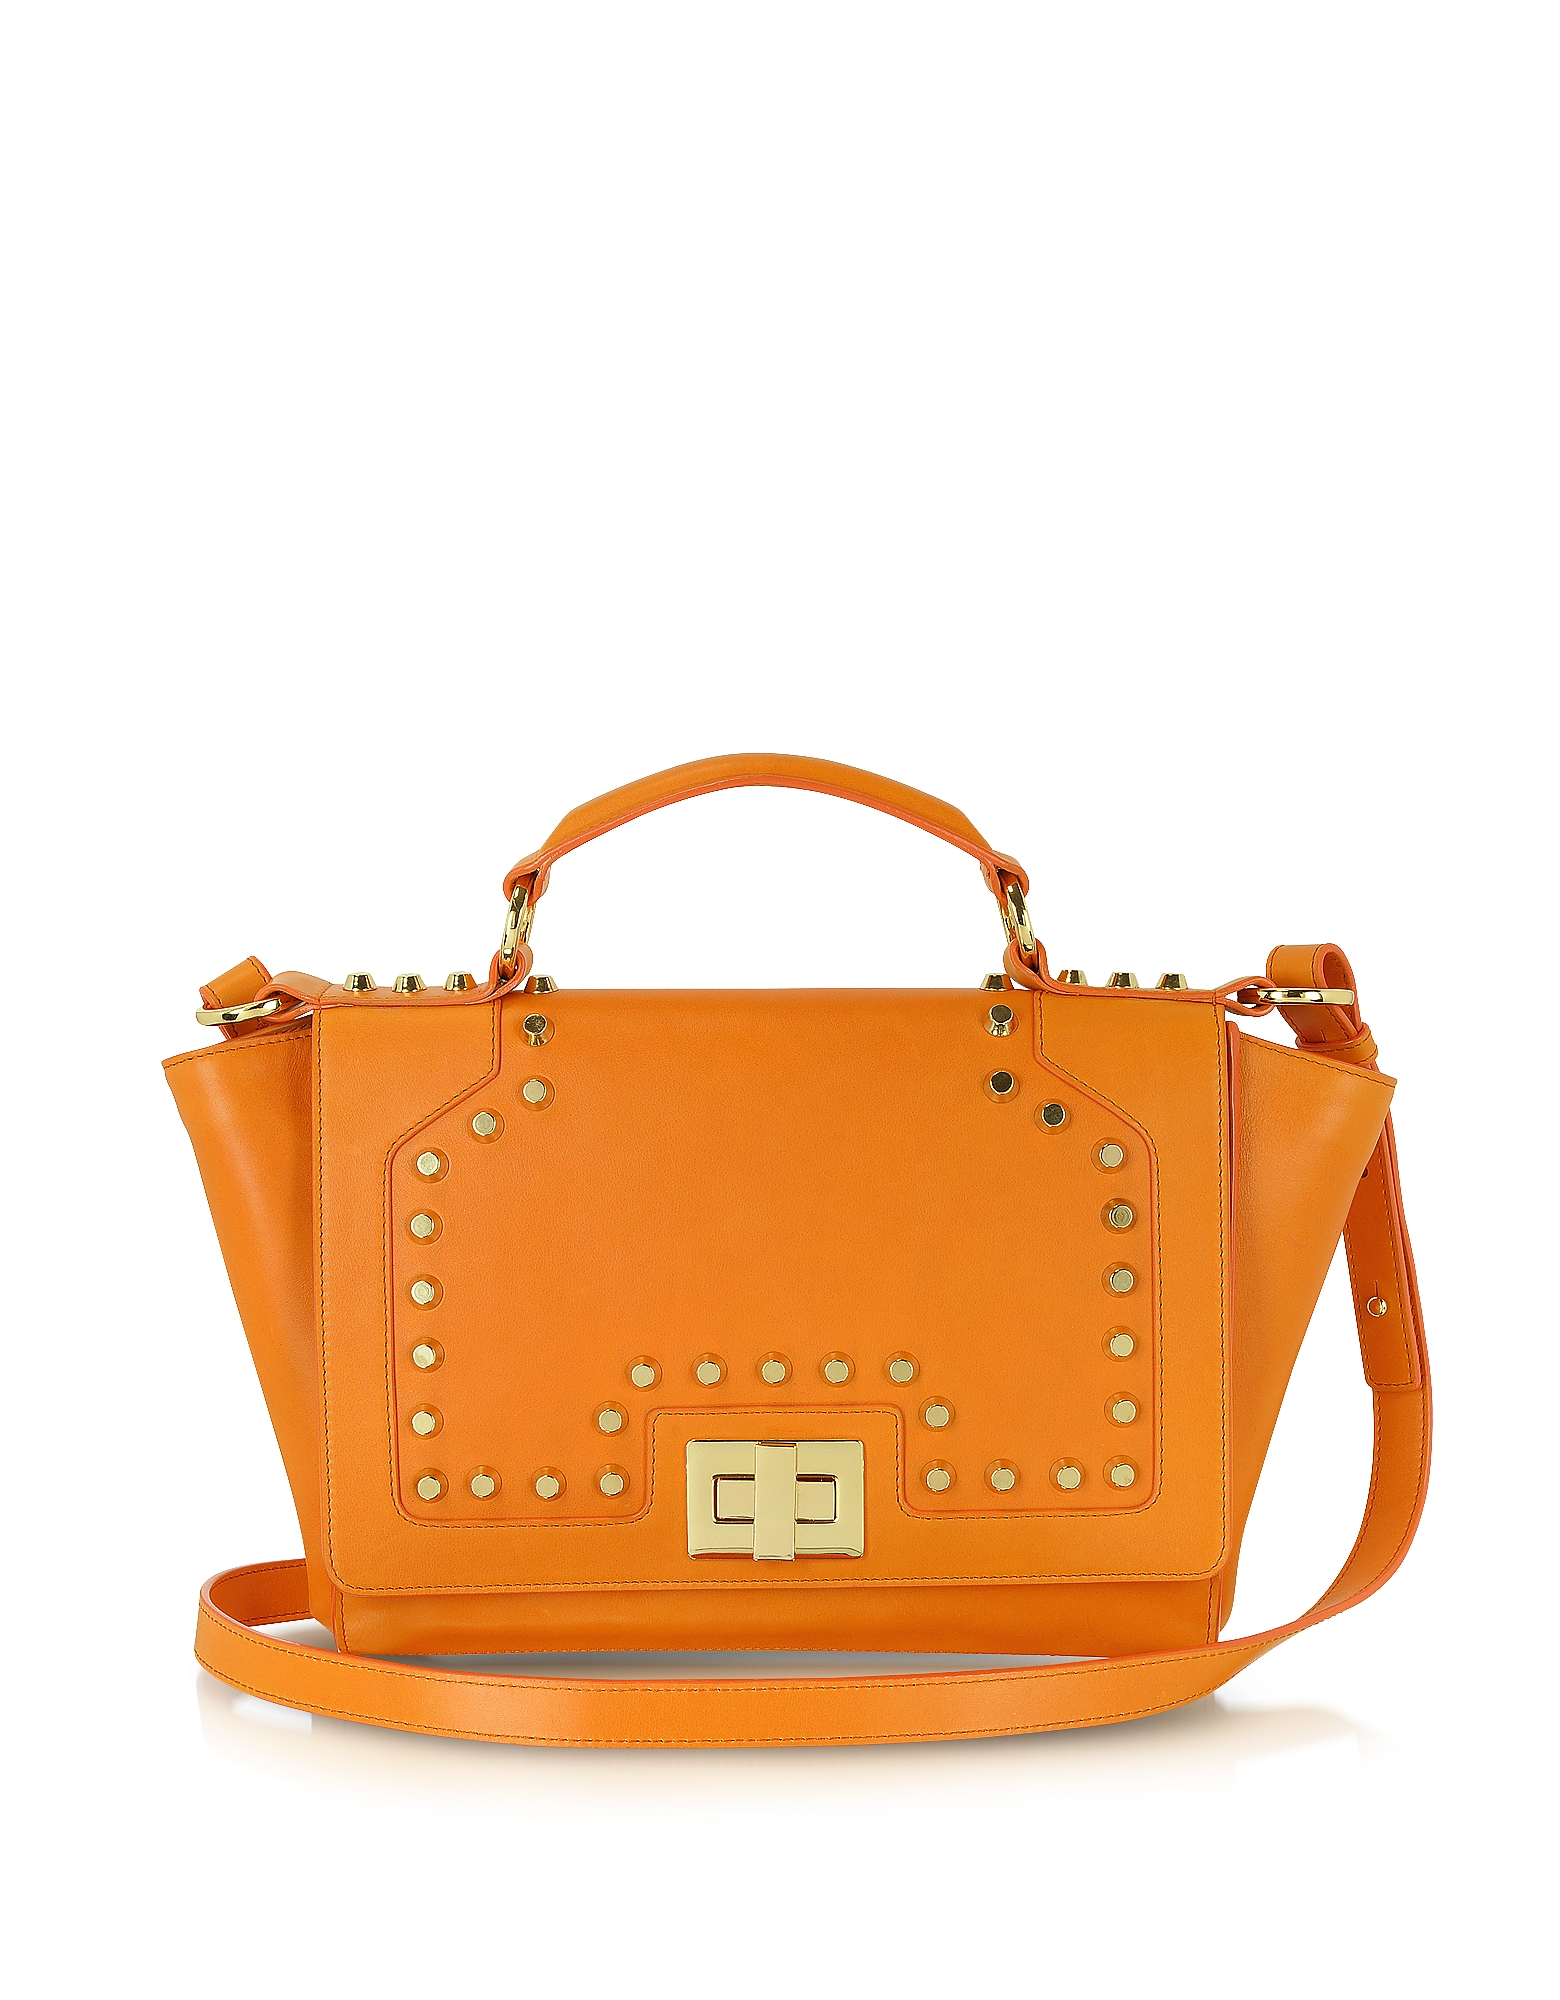 Leonardo Delfuoco Designer Handbags, Studded Orange Leather iPad Bag (Luggage & Bags) photo